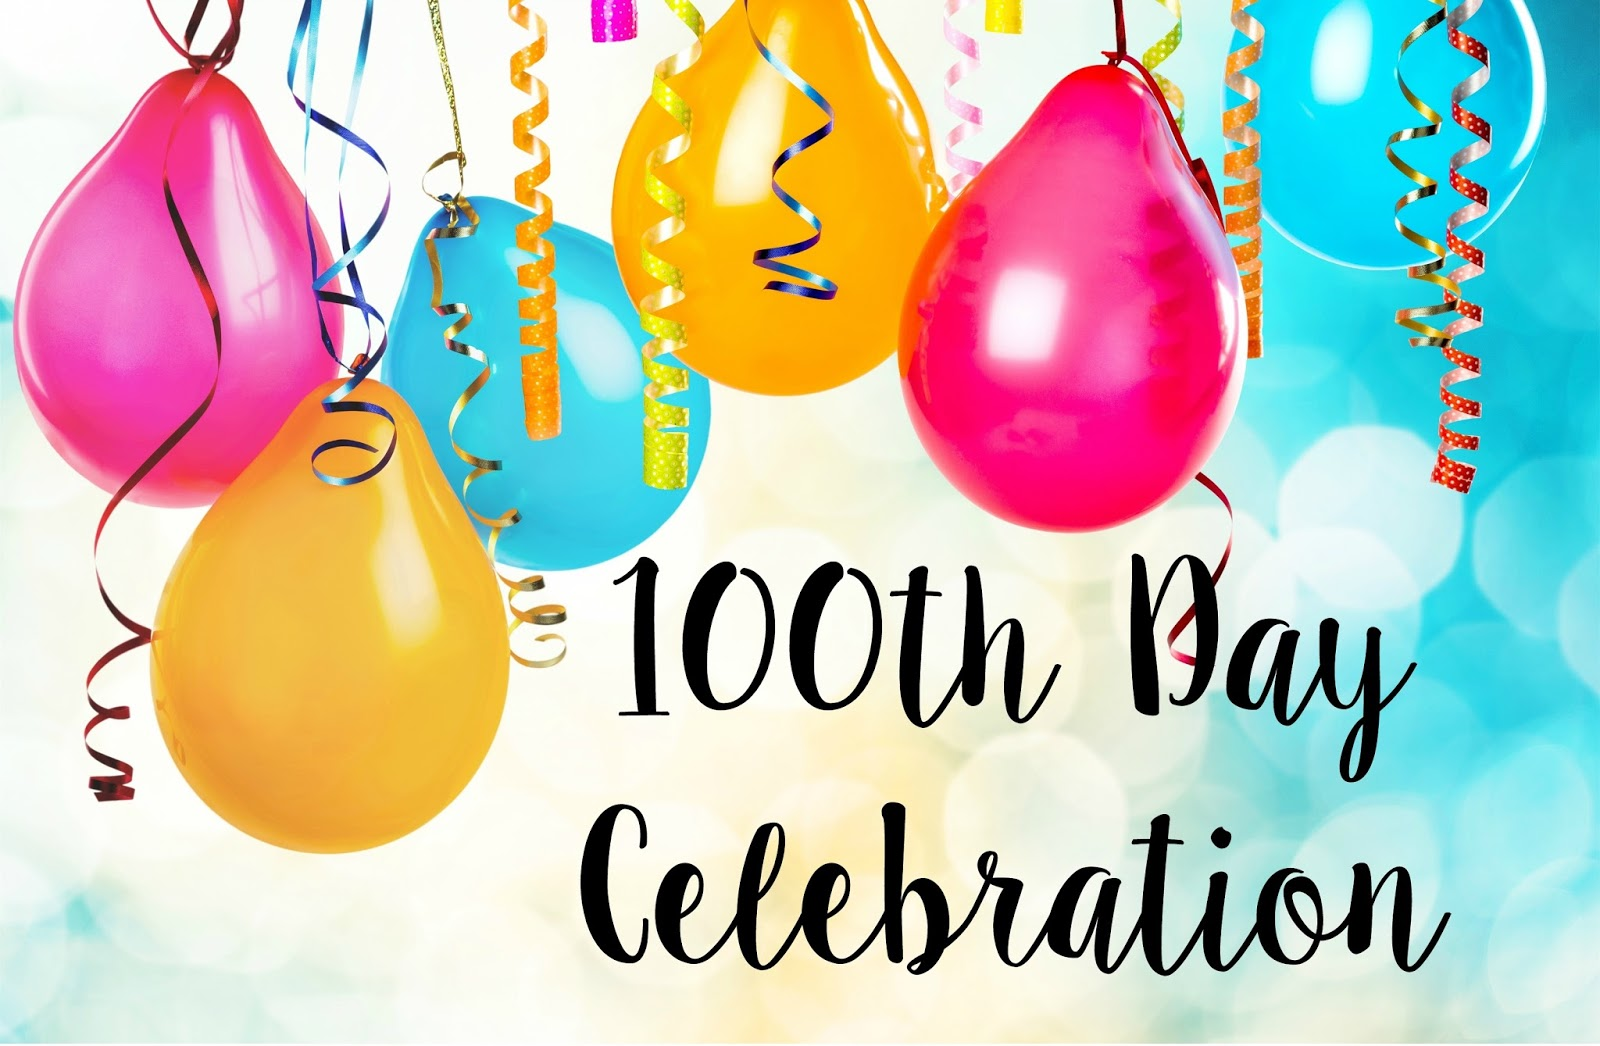 100th Day Celebration